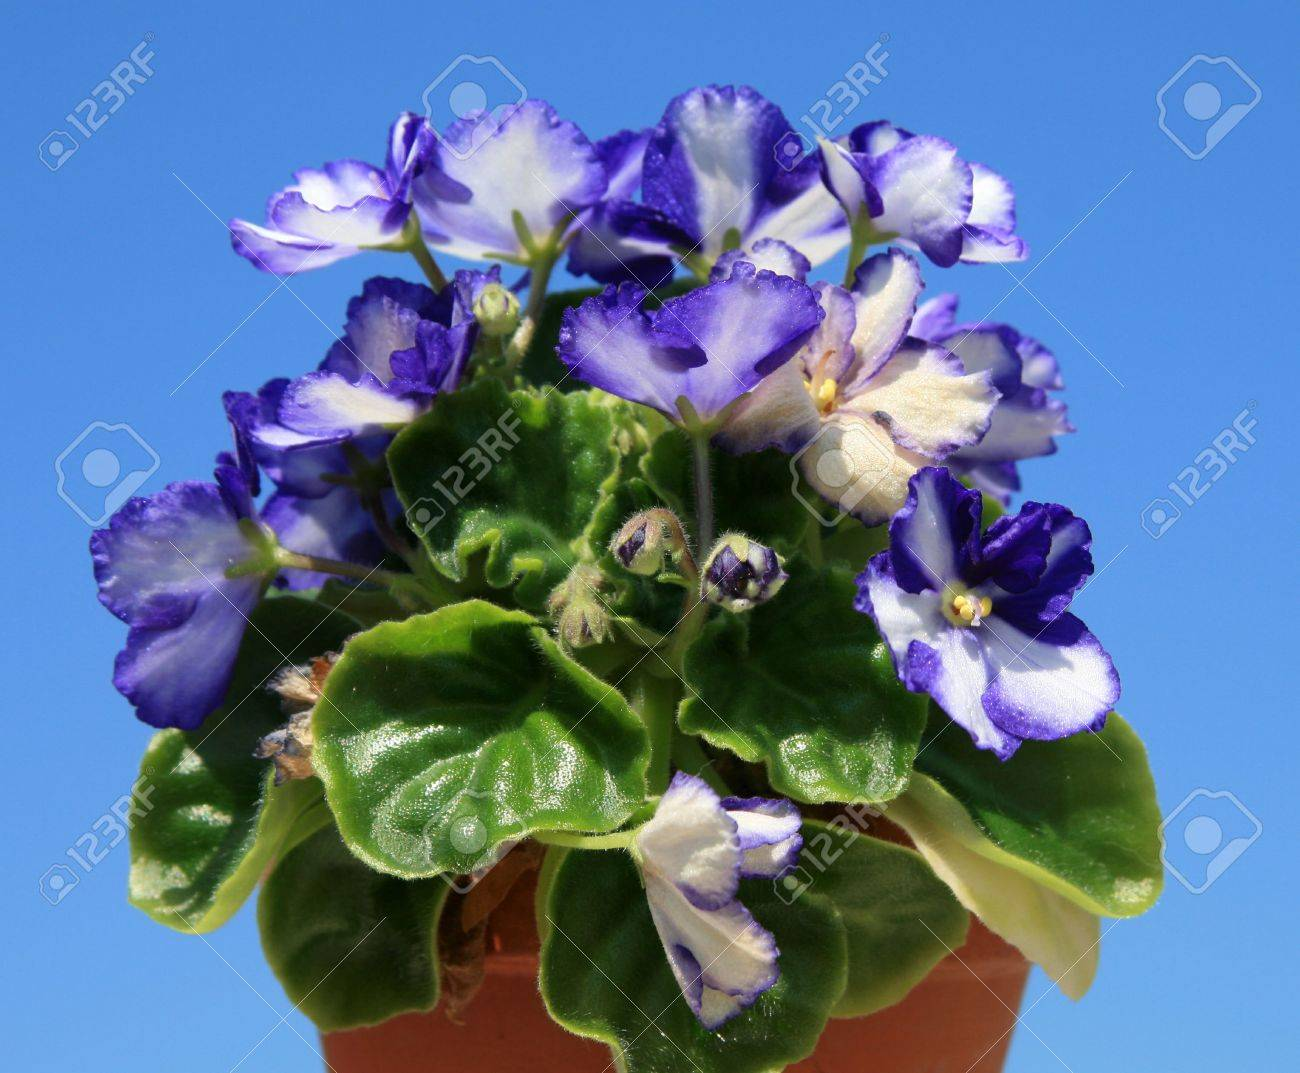 Potted African violets against a blue sky background Stock Photo - 1354492